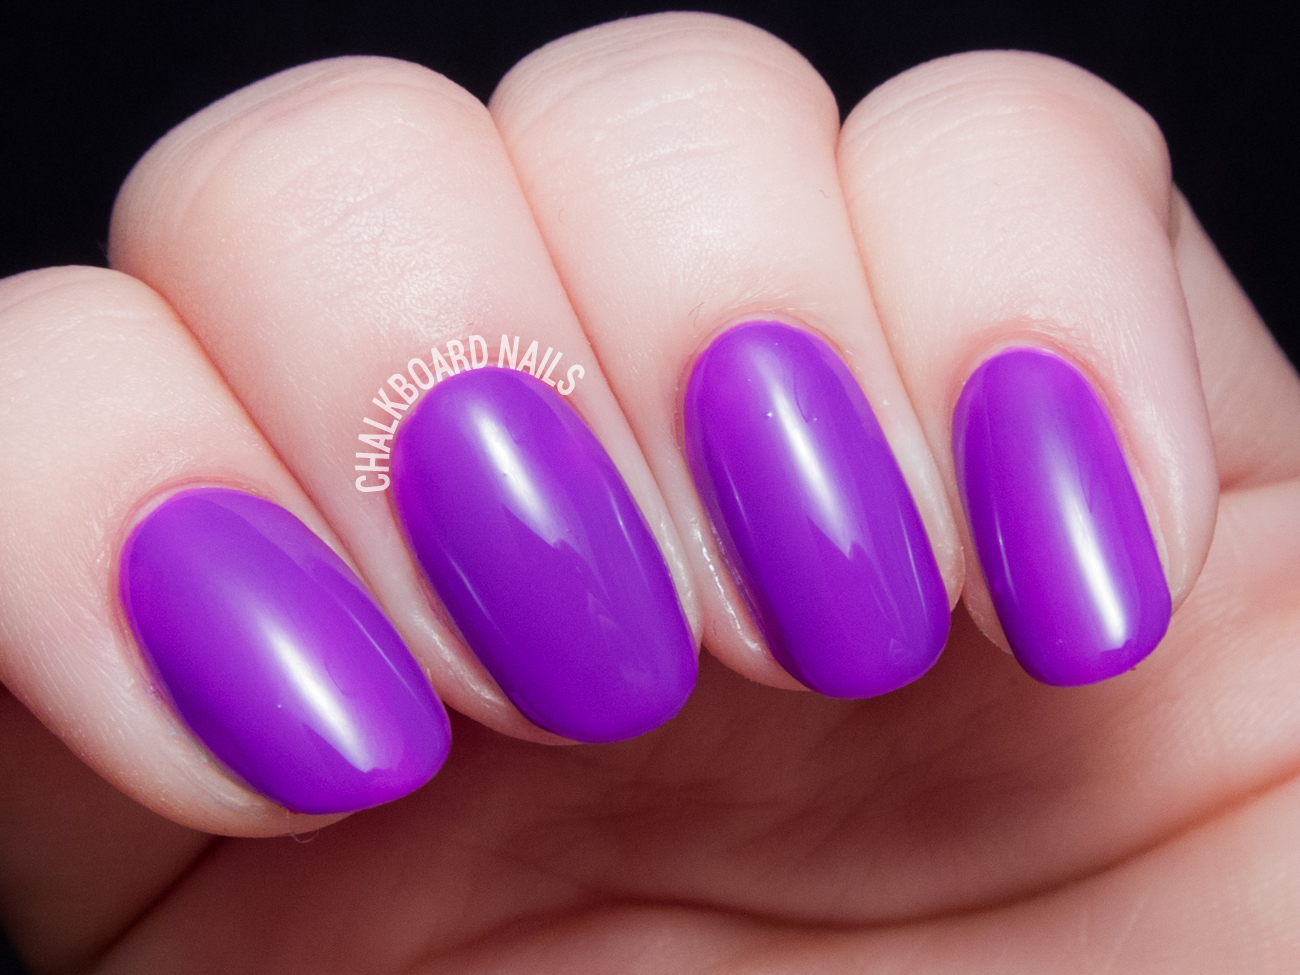 China Glaze PLUR-ple via @chalkboardnails